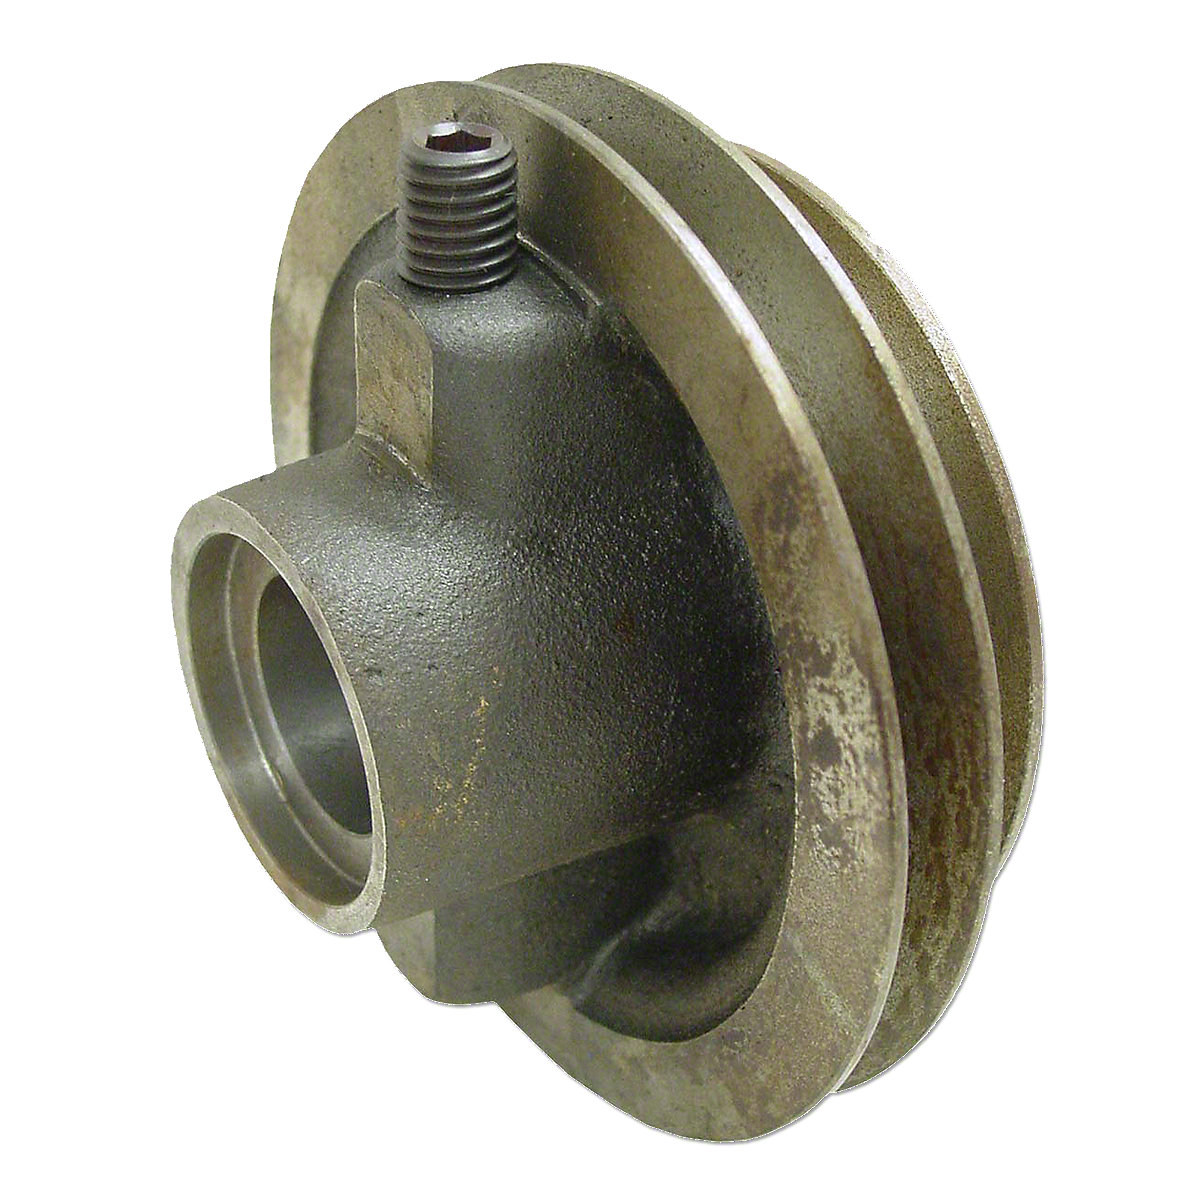 Crank Shaft Pulley For Allis Chalmers: WD, WD45